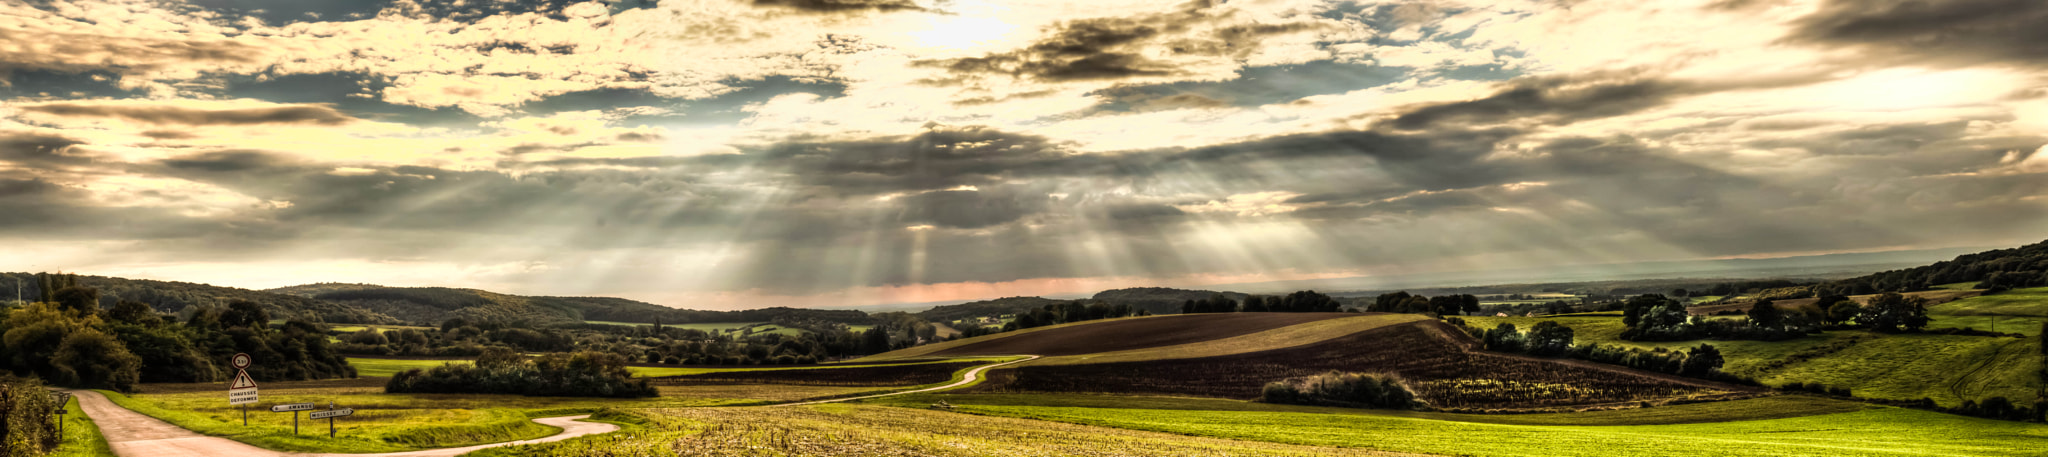 Photograph Panorama by Maxime  Lamboley on 500px